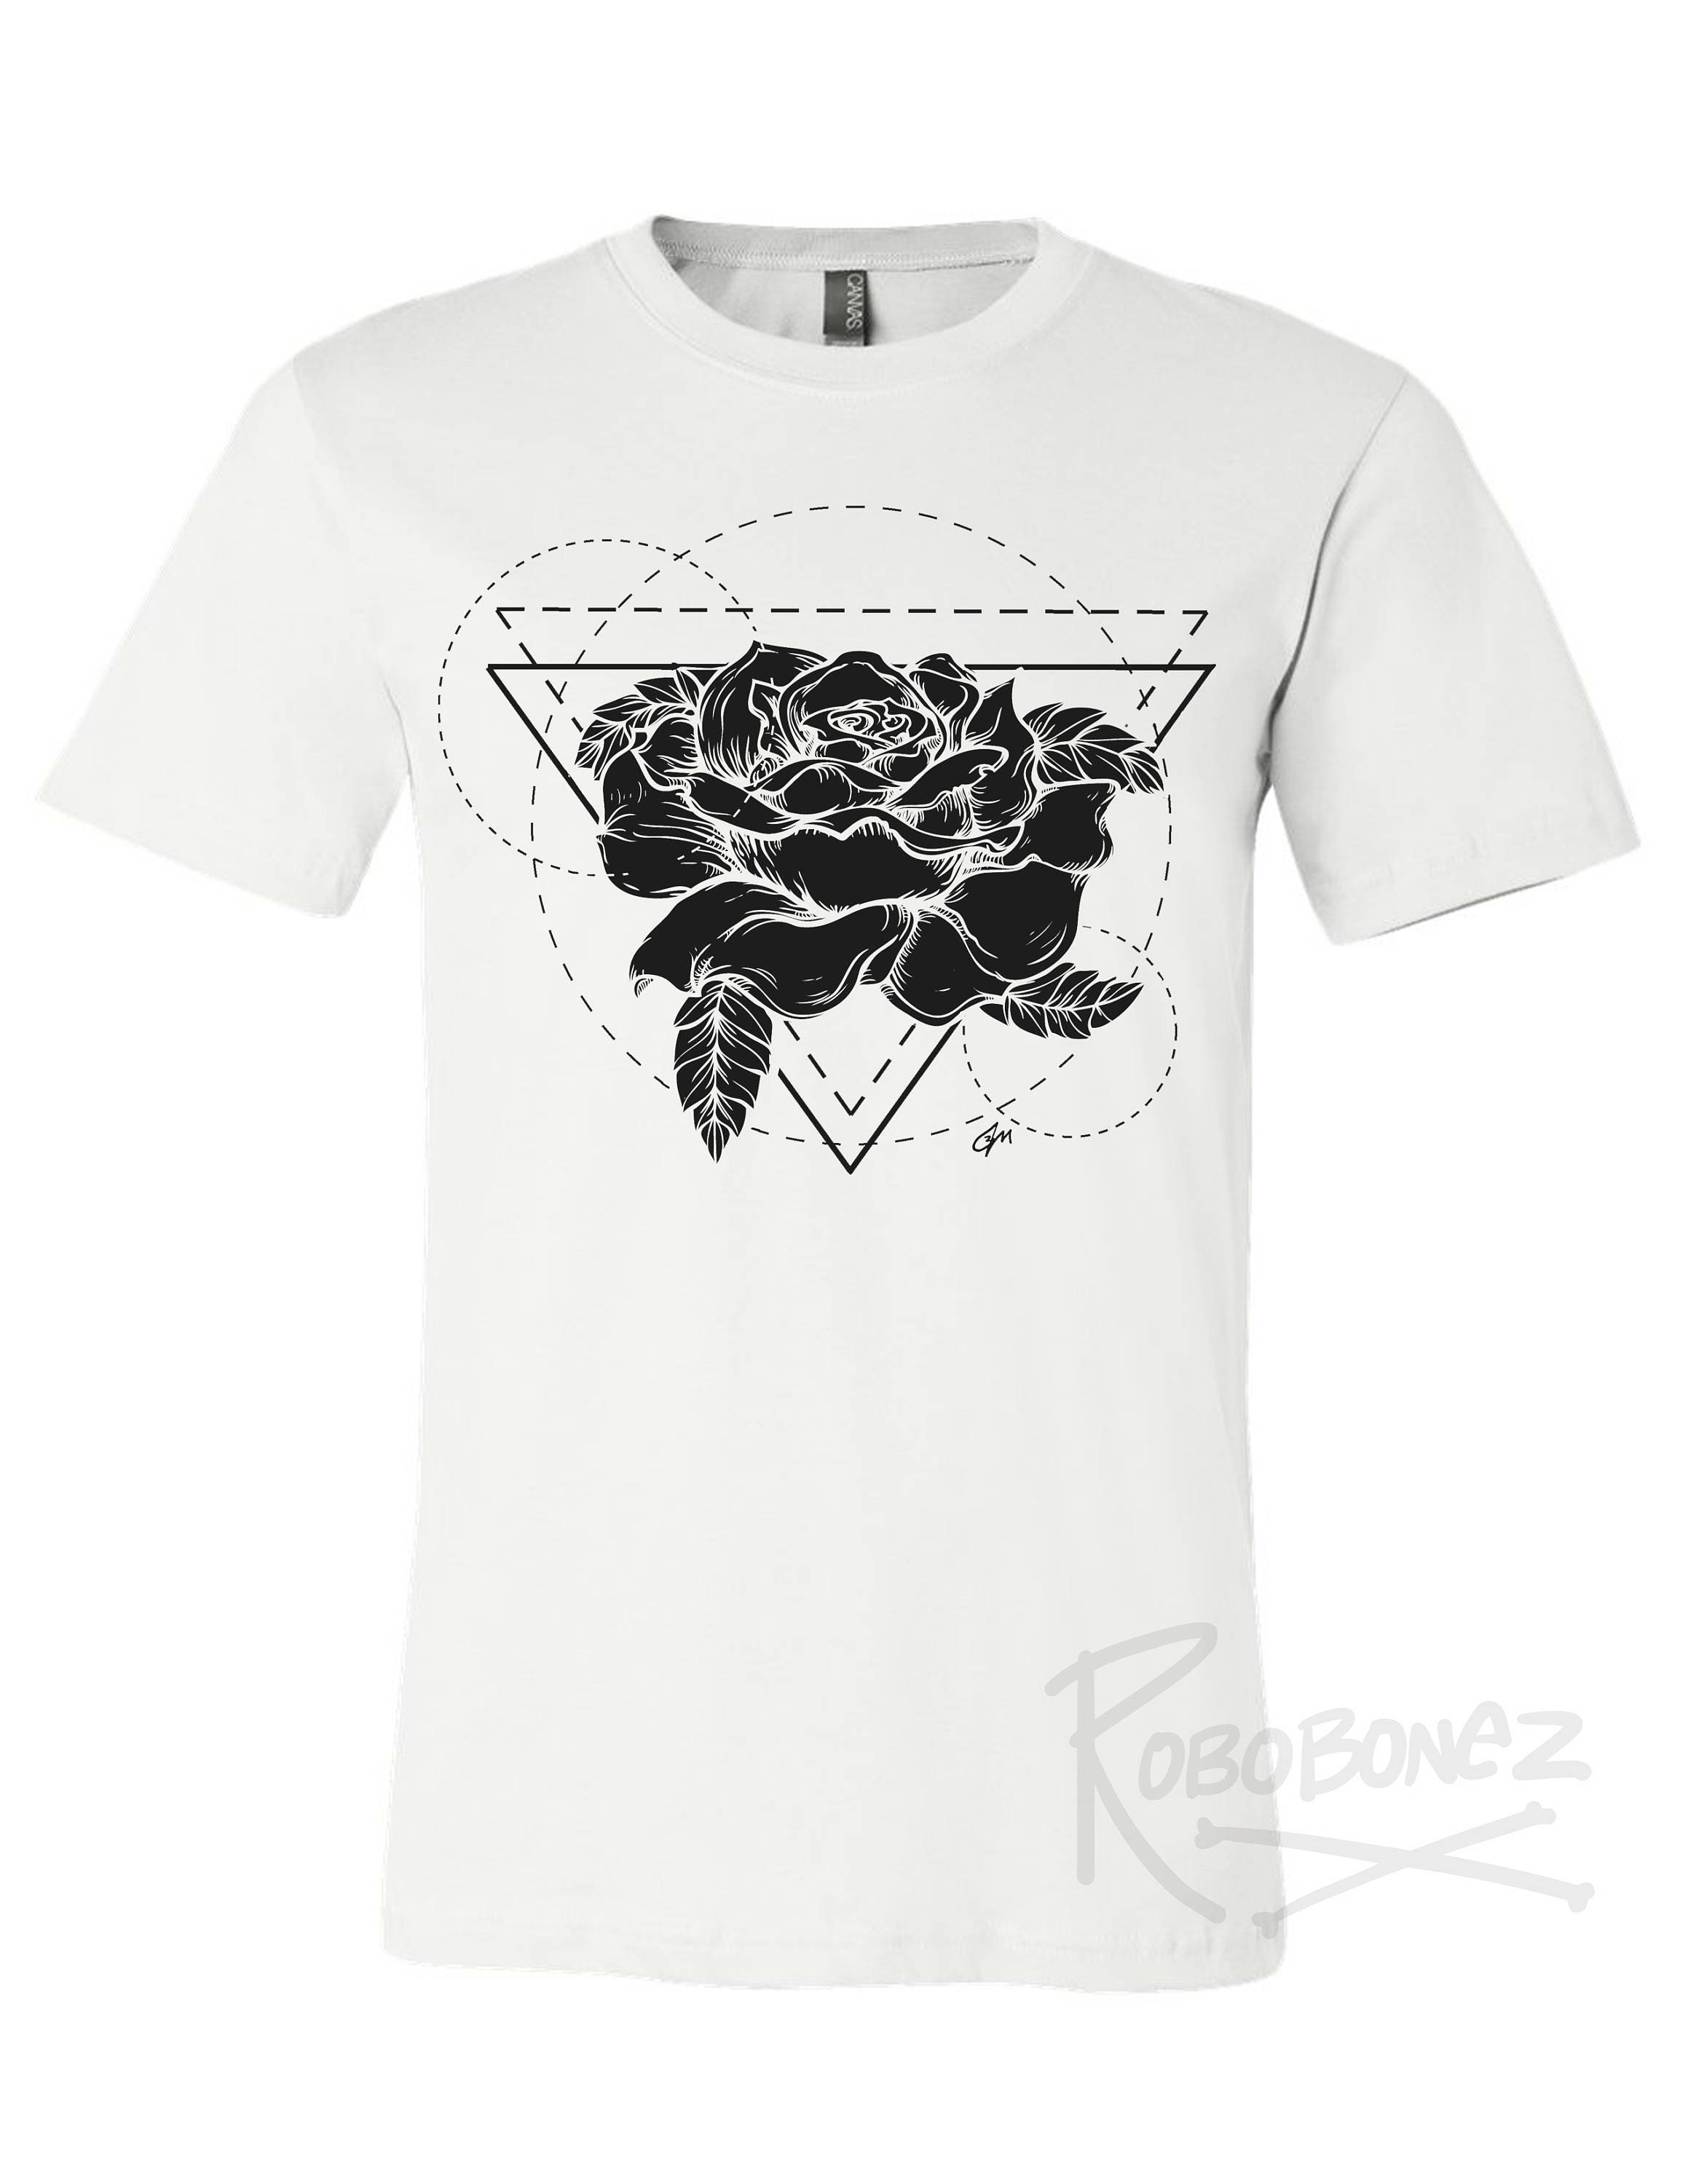 Black Rose Tshirtgeometric Rose T Shirt Design Tshirt Etsy